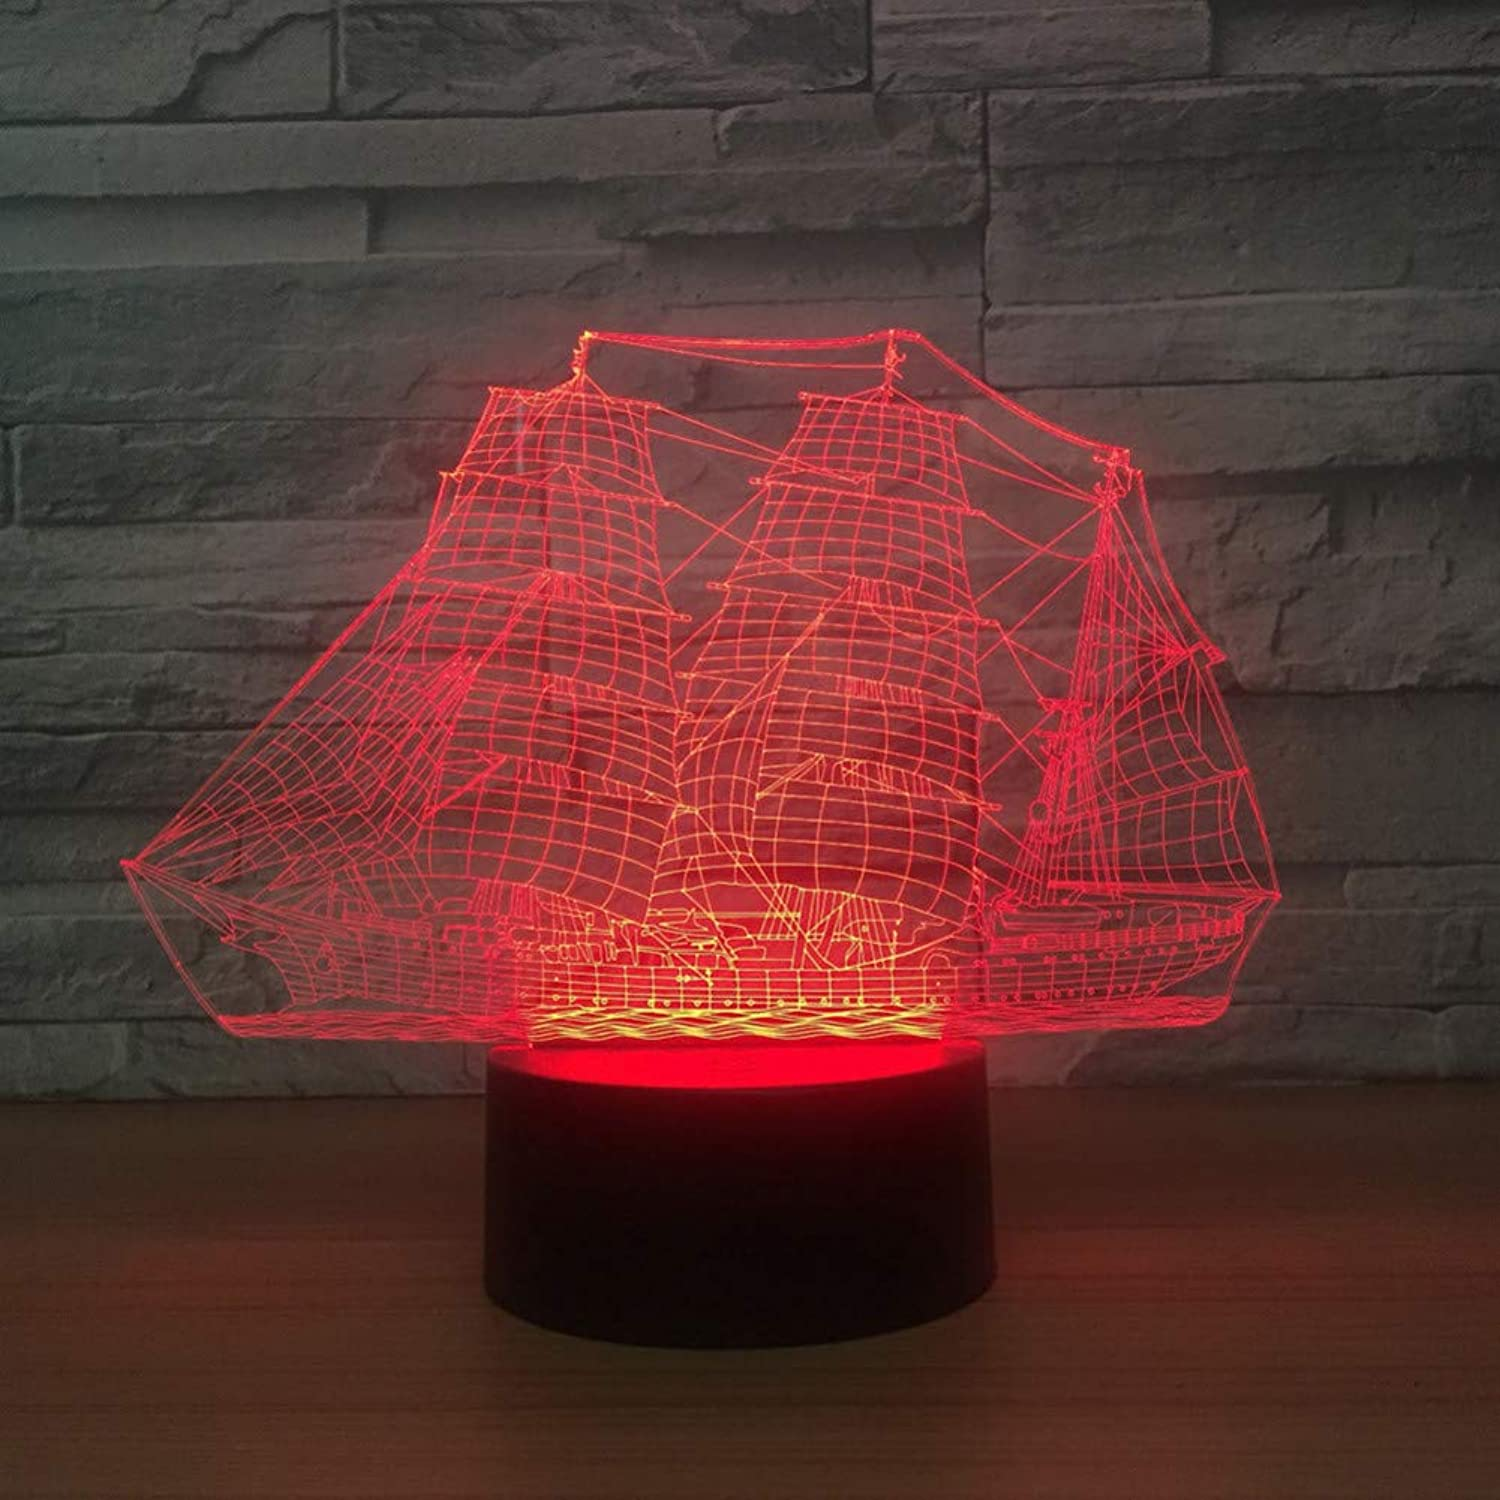 KAIYED 3D Night Light Sailing Boat Ship 3D Led Night Light 7 color Changing USB Table Desk Lamp for Baby Sleeping Lighting 3D Lamp